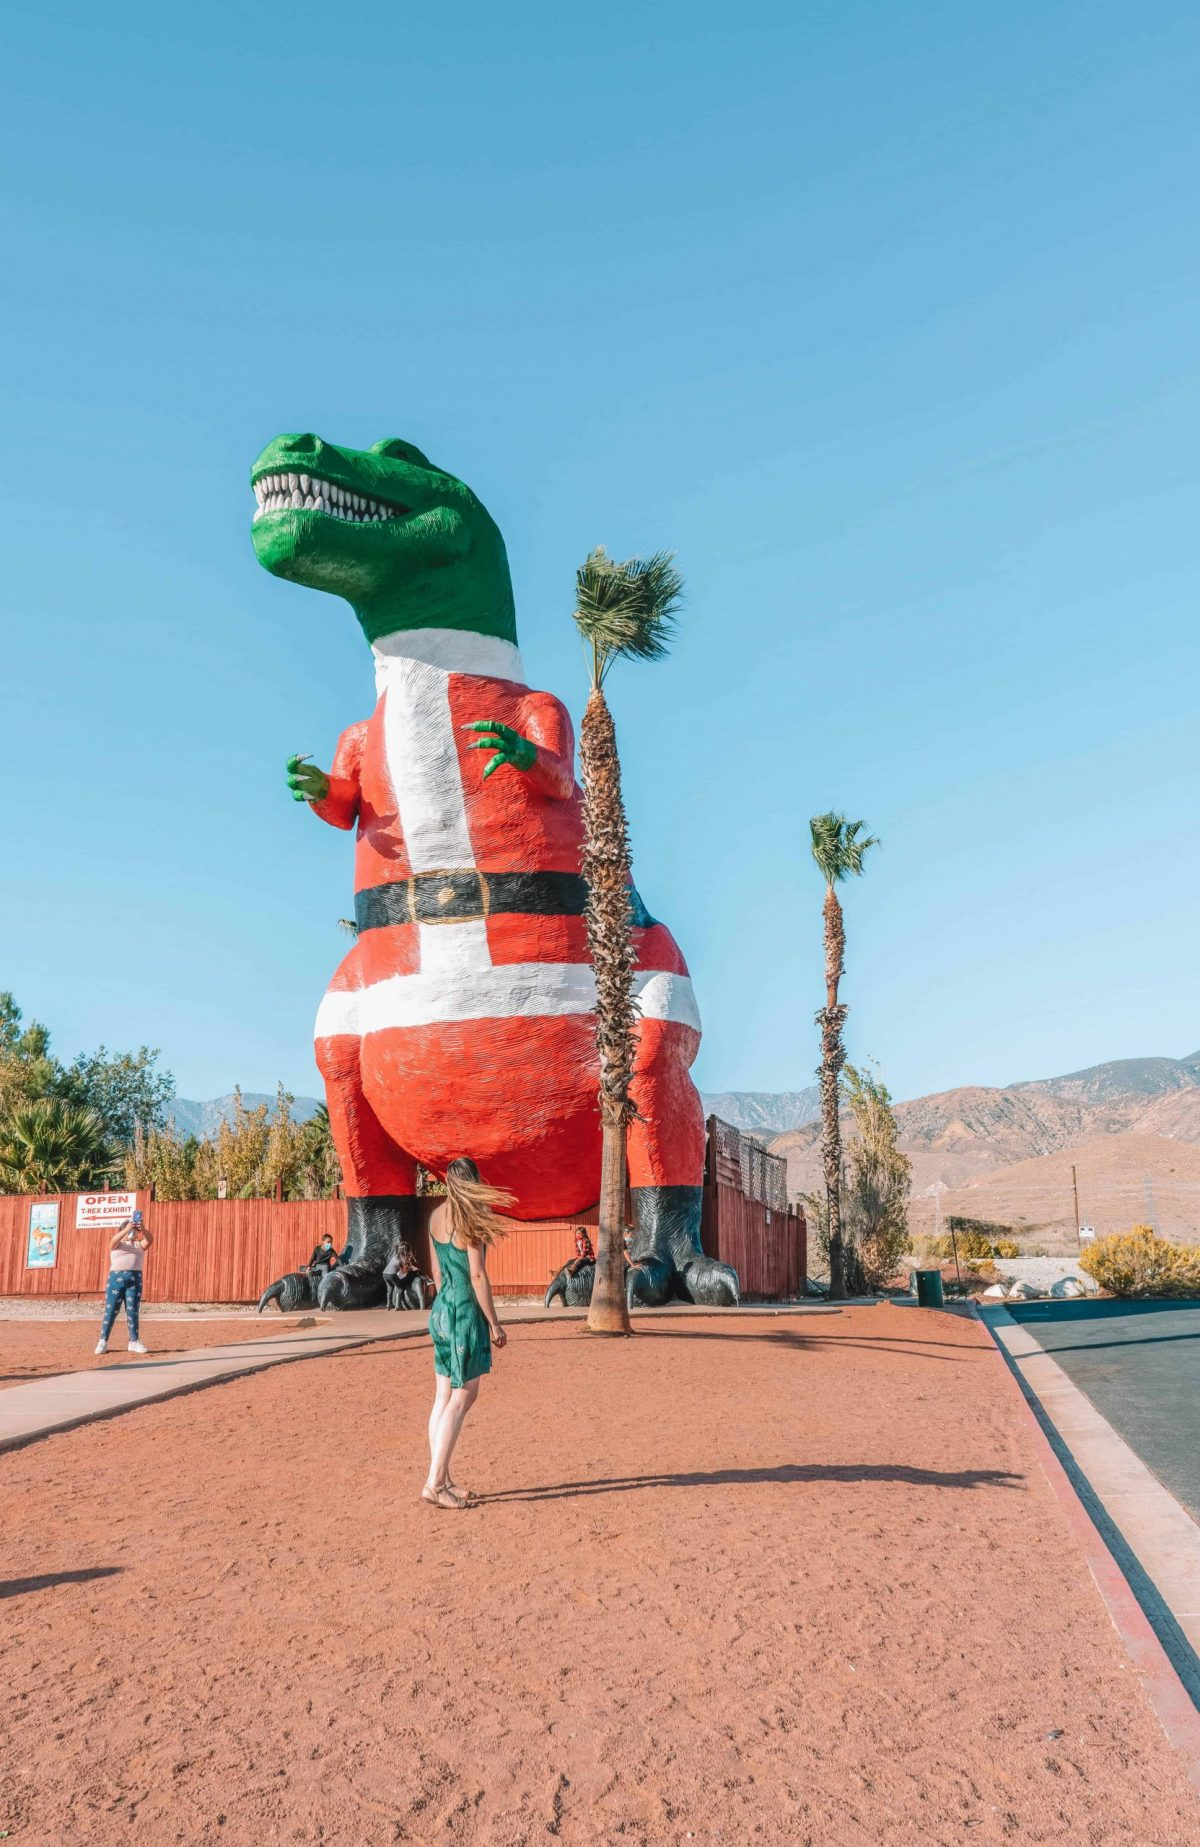 Cabazon dinosaurs roadside attraction near Palm Springs